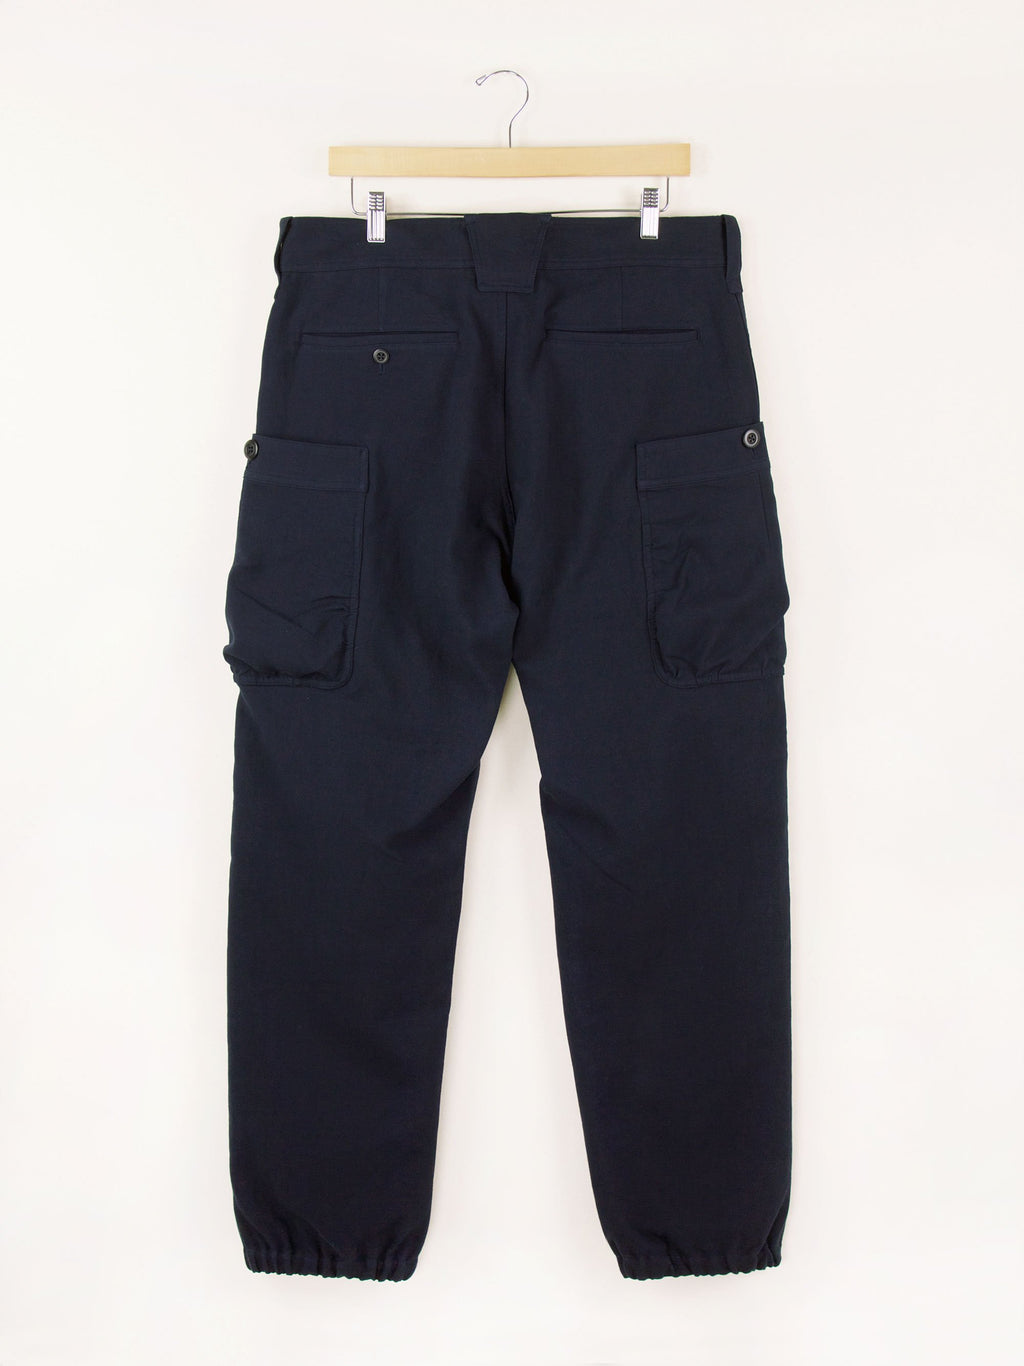 Namu Shop - ts(s) Gathered Round Pocket Pants